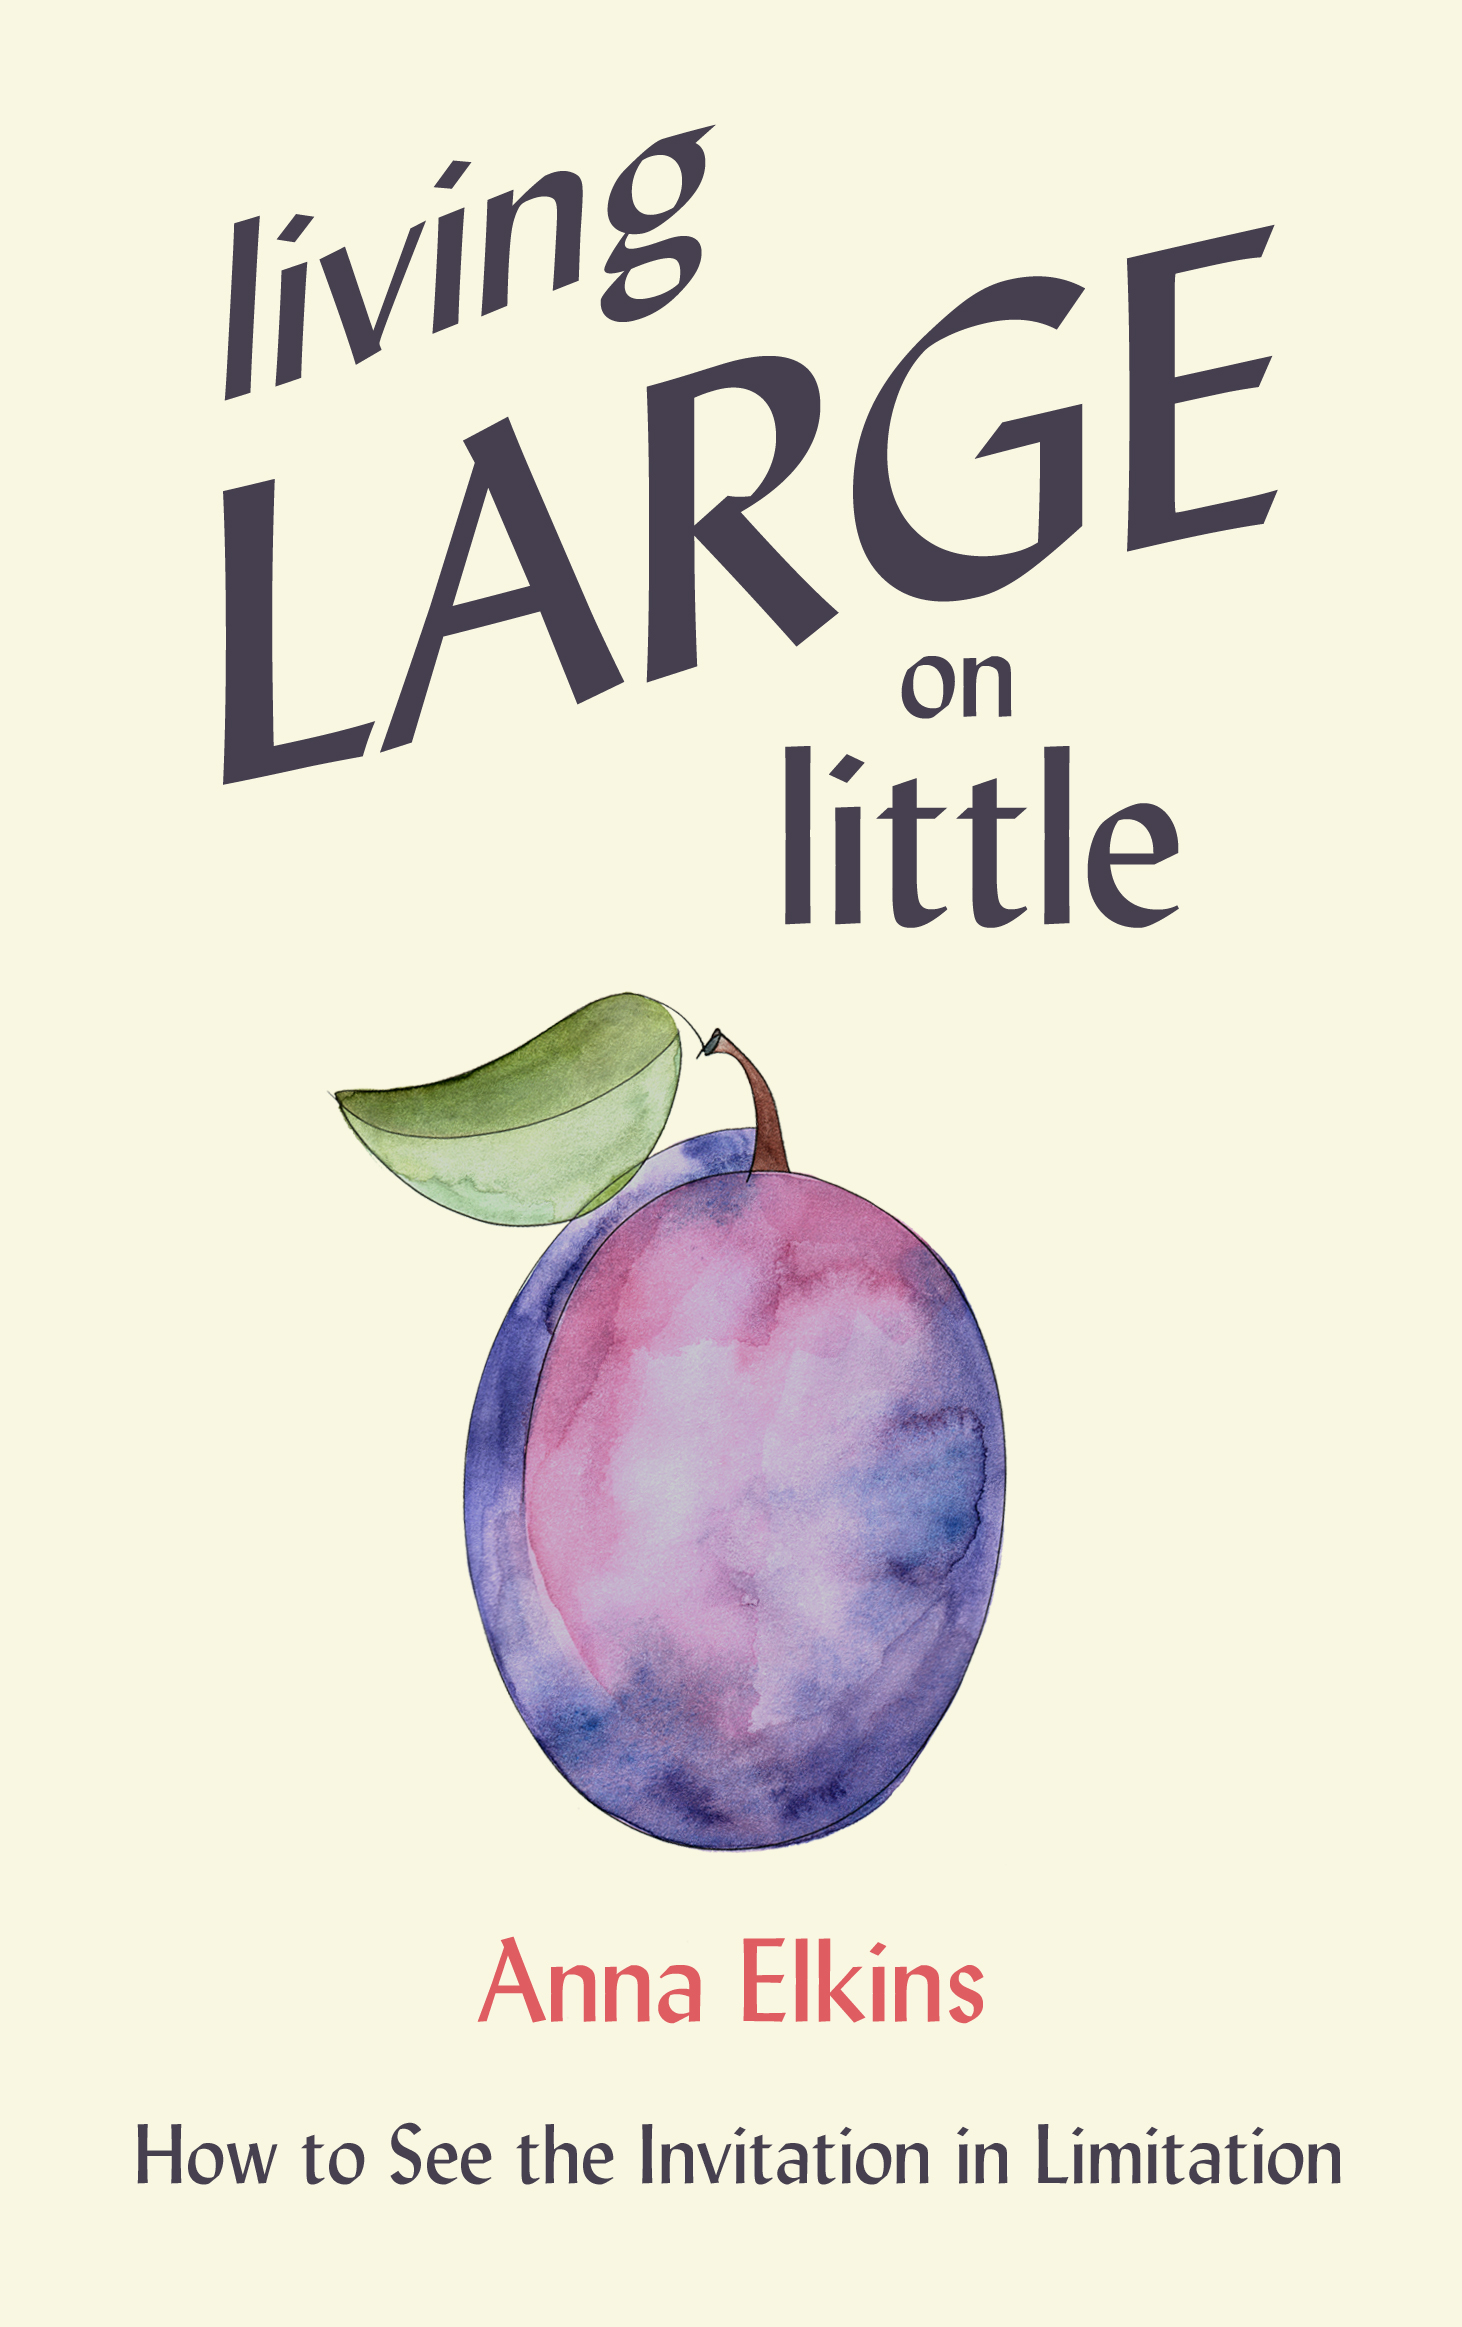 Living Large on Little - by Anna Elkins